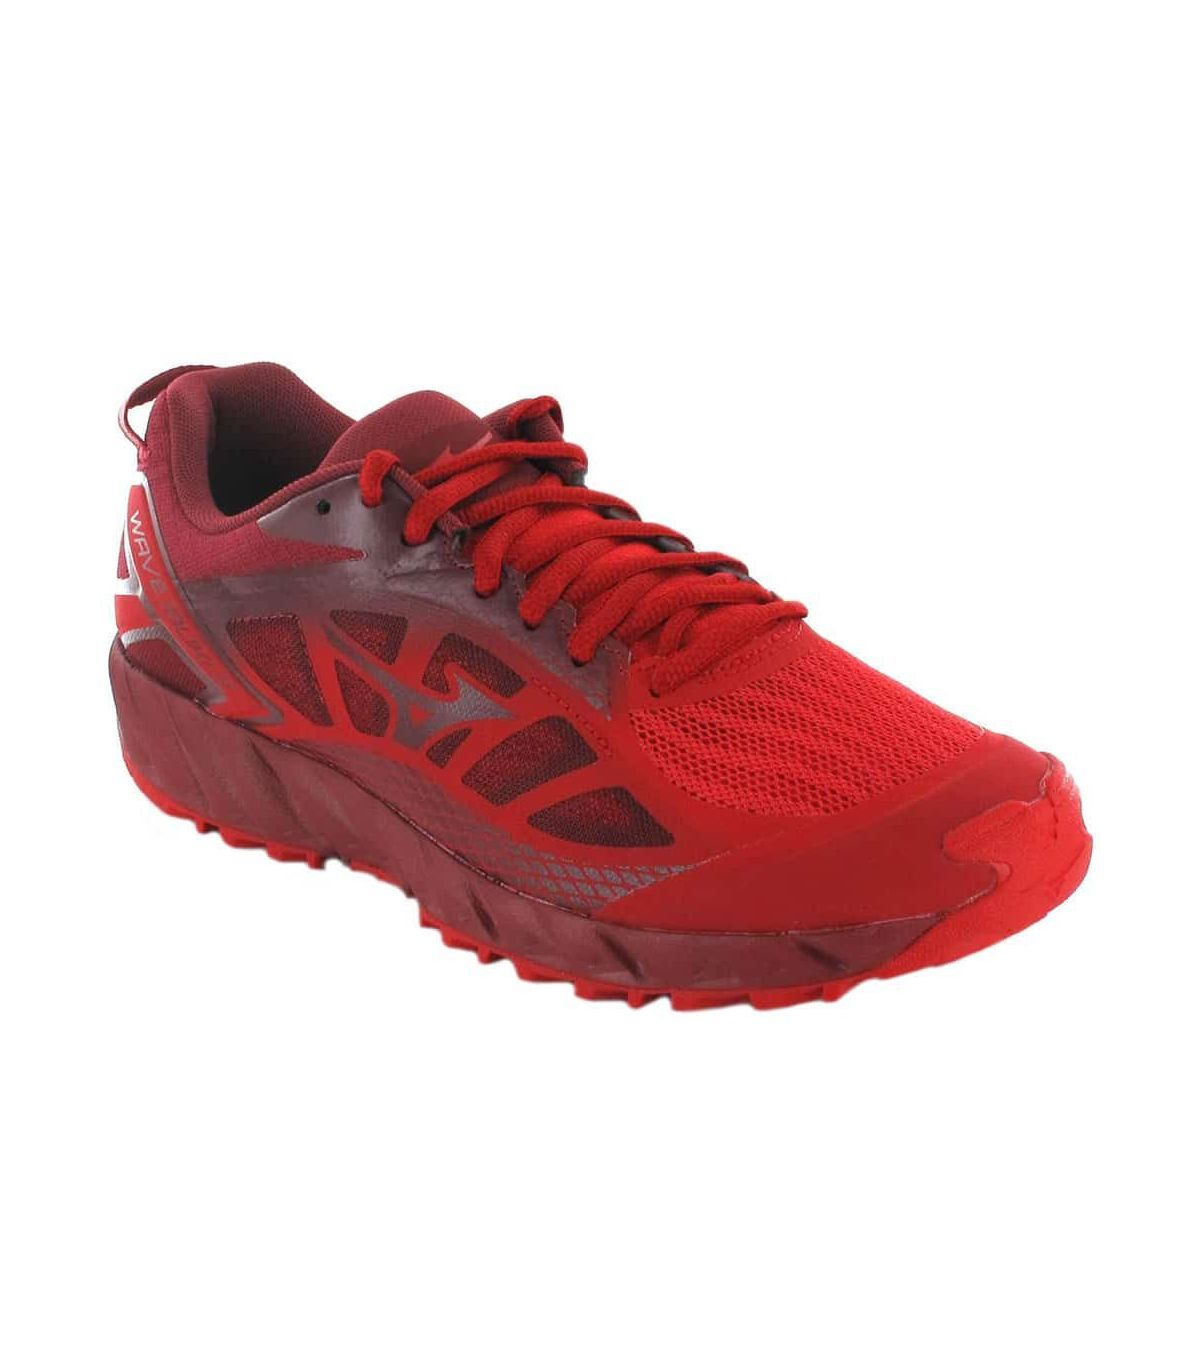 Mizuno Wave Ibuki 2 Red Mizuno Running Shoes Trail Running Mens Running Shoes Trail Running Sizes: 42, 42,5, 43, 44